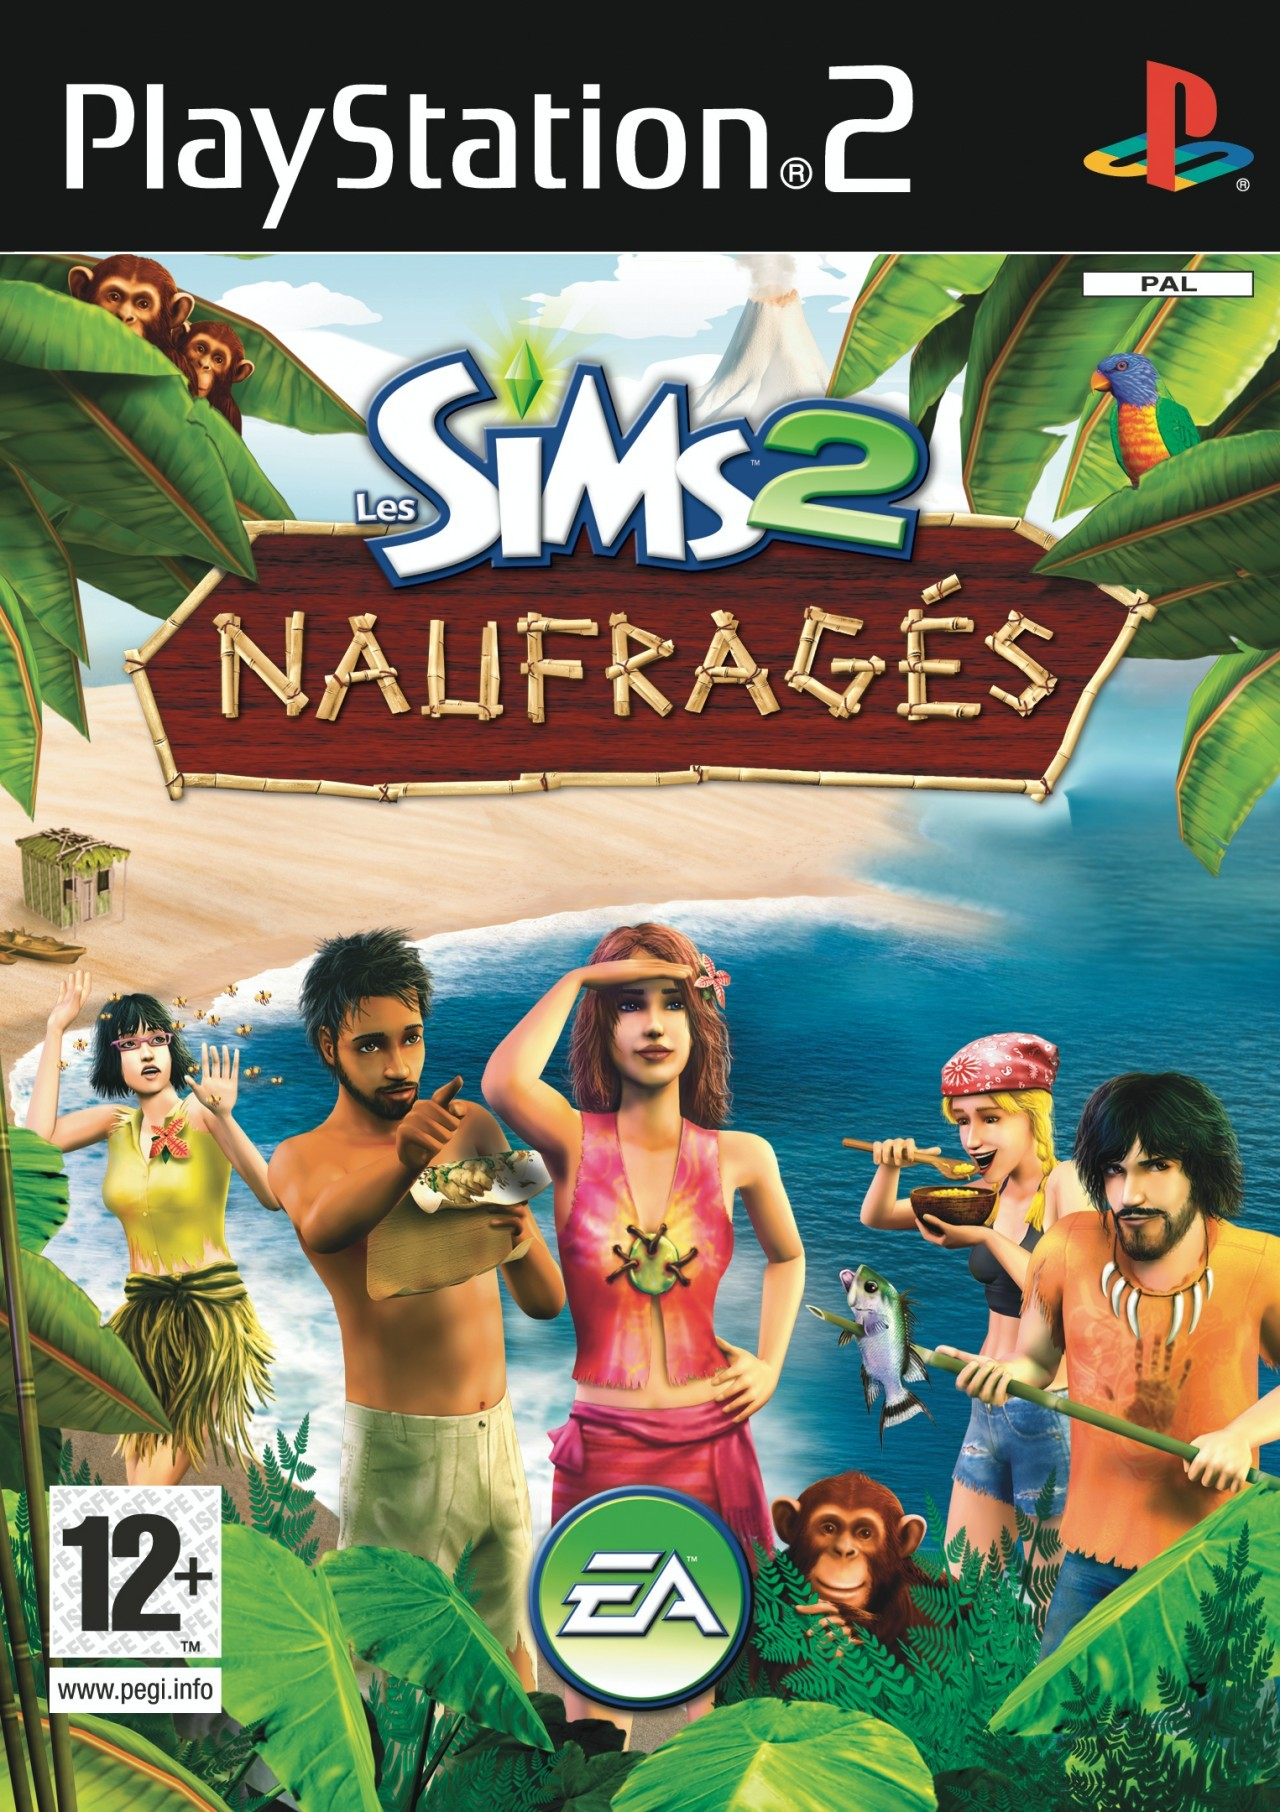 Les Sims 3 Showtime Edition Collector Katy Perry: Les Sims 2 : Naufragés